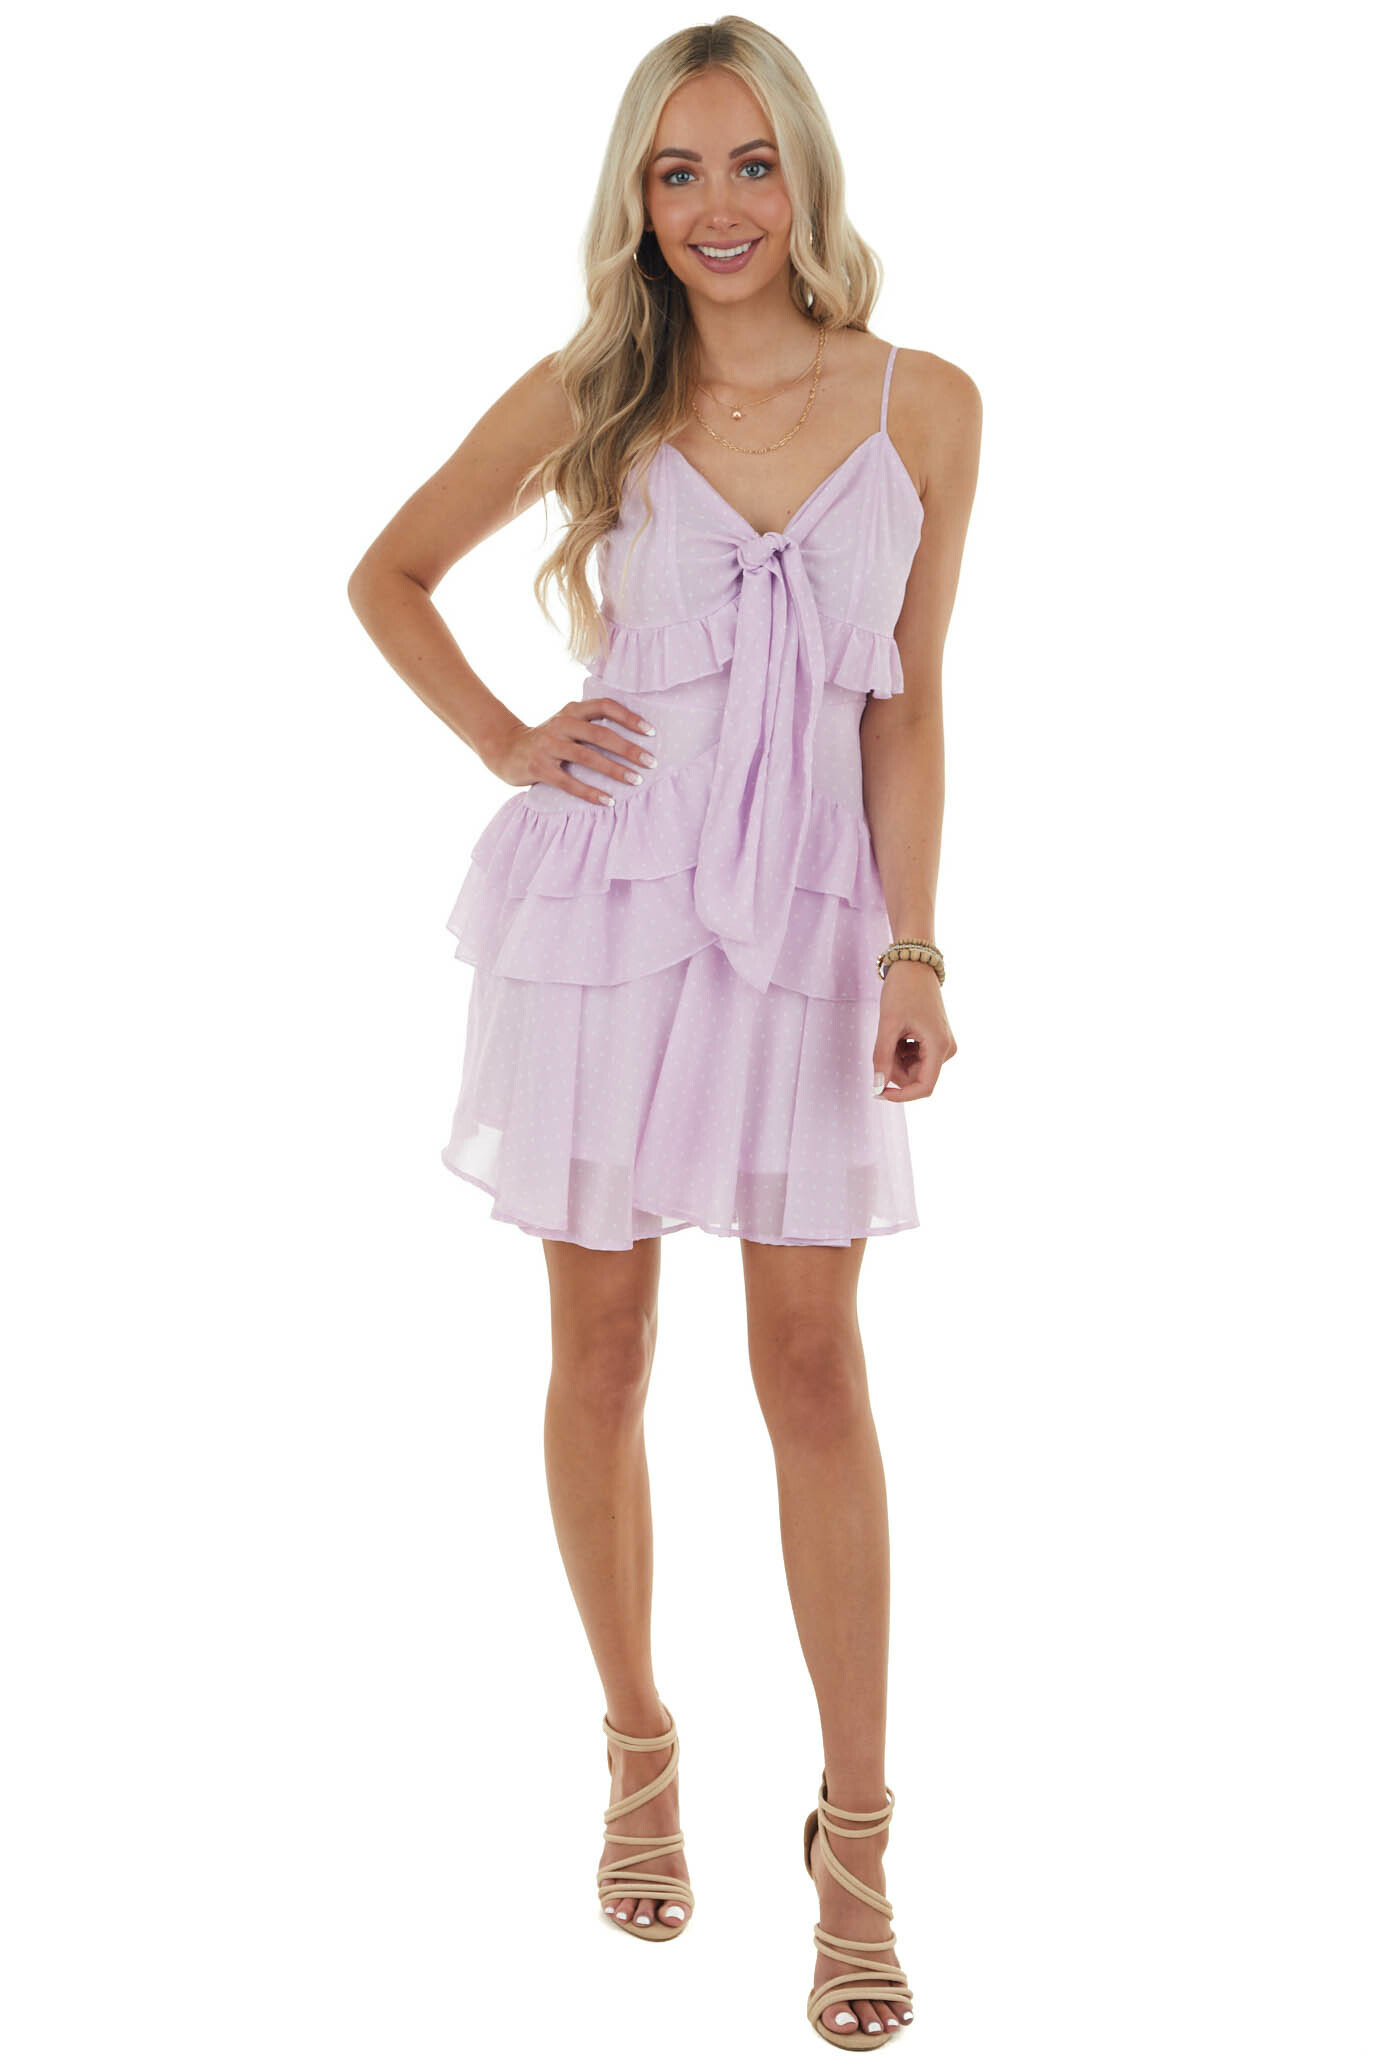 Orchid and Ivory Polka Dot Tiered Mini Dress